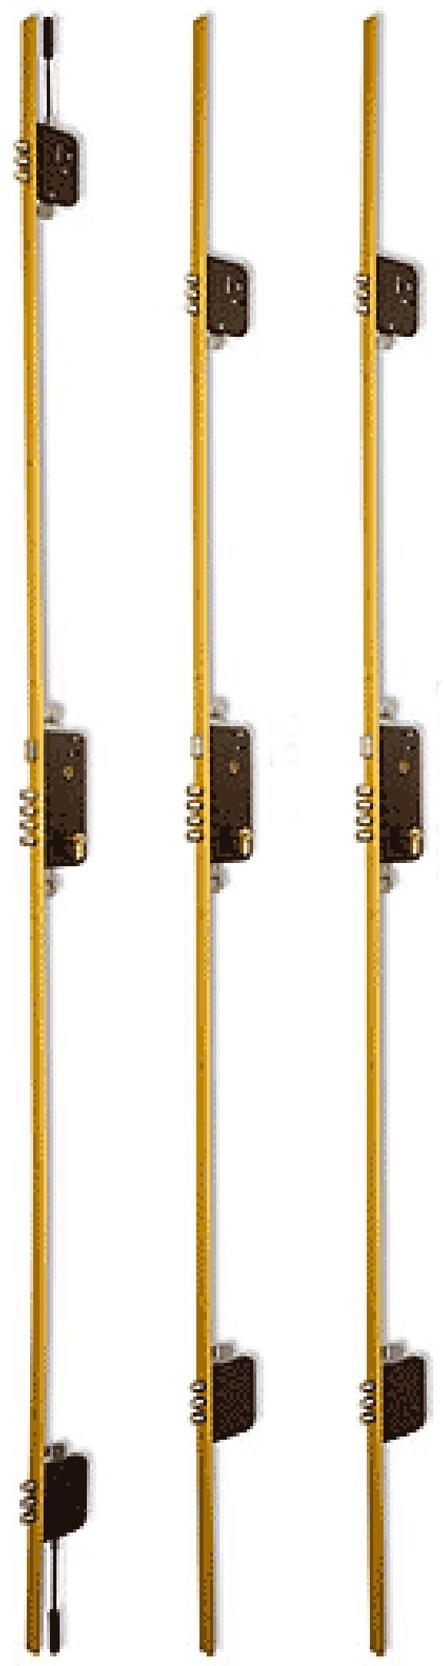 U8920 / U8922 / U8923 - Multi Point Lock